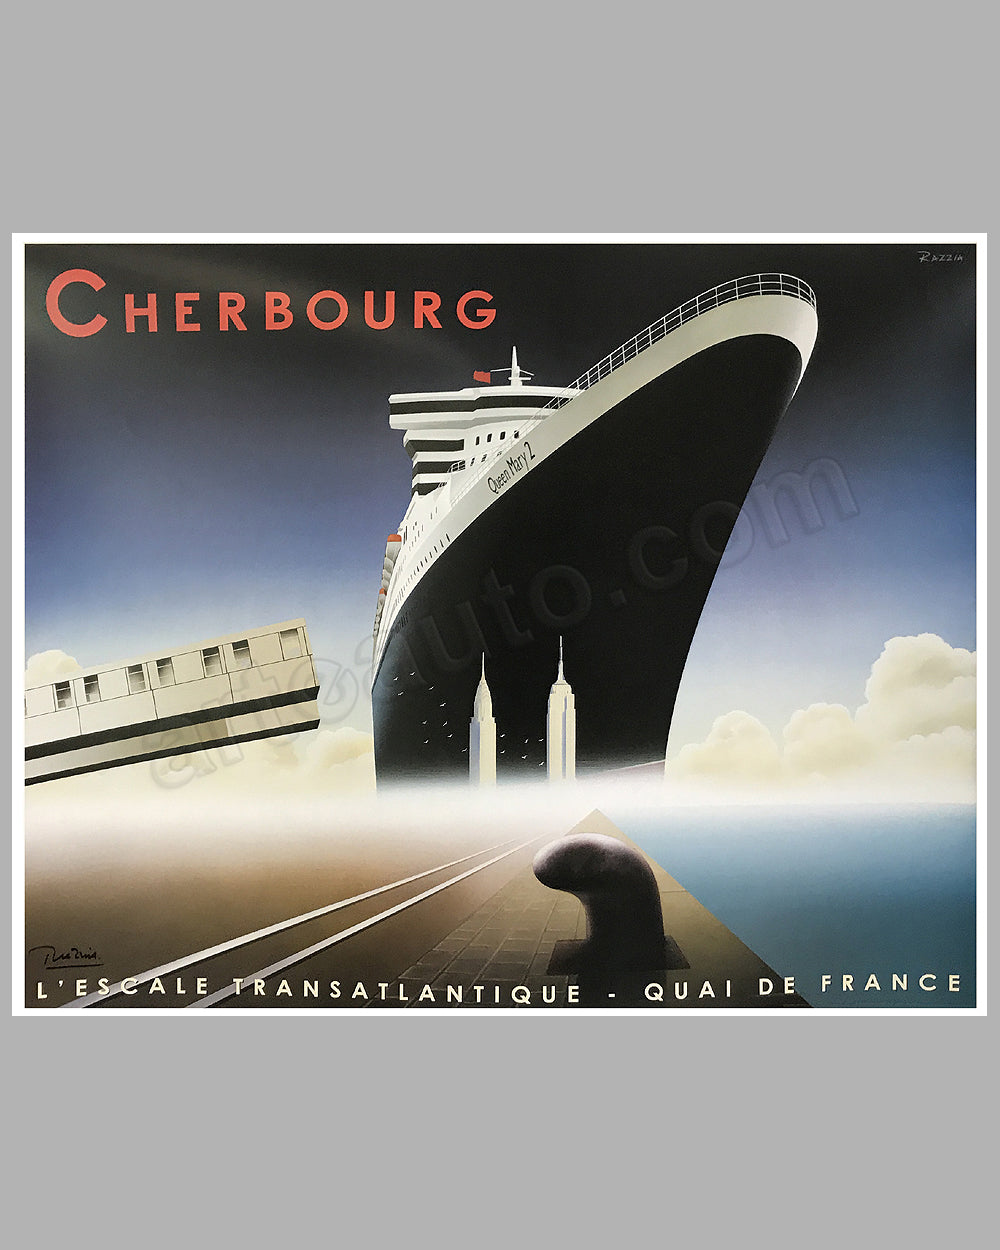 Cherbourg l' Escale Transatlantique large poster by Razzia